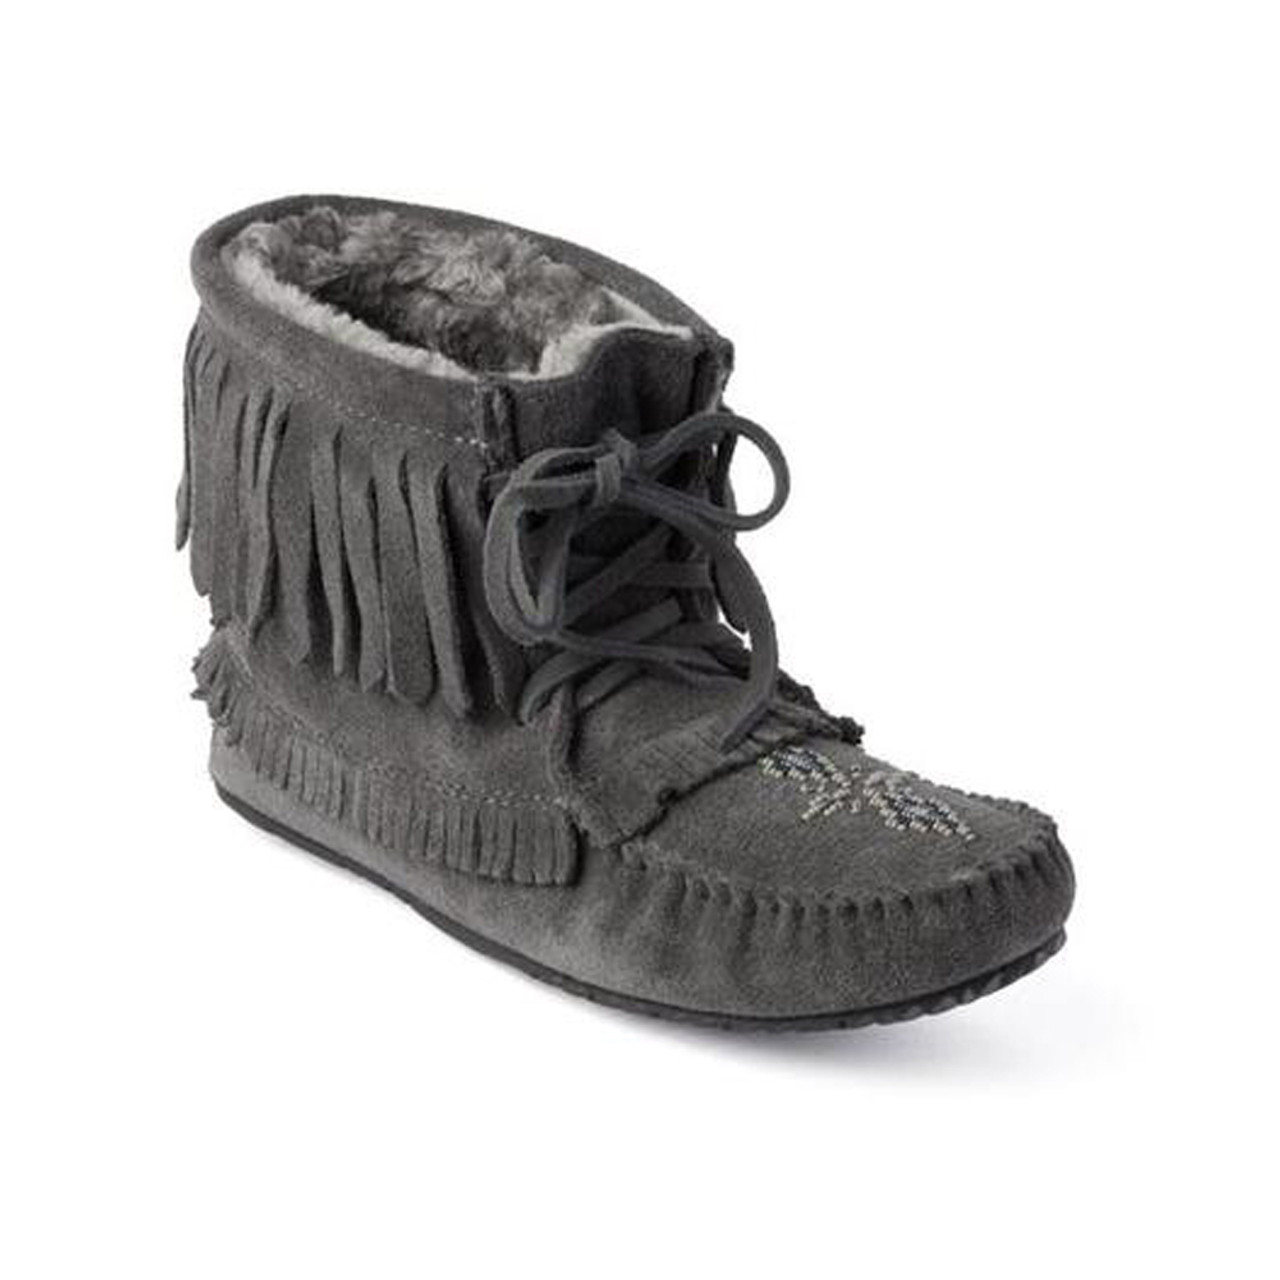 New Manitobah Mukluks Women S Harvester Suede Lined Moccasin Bootie